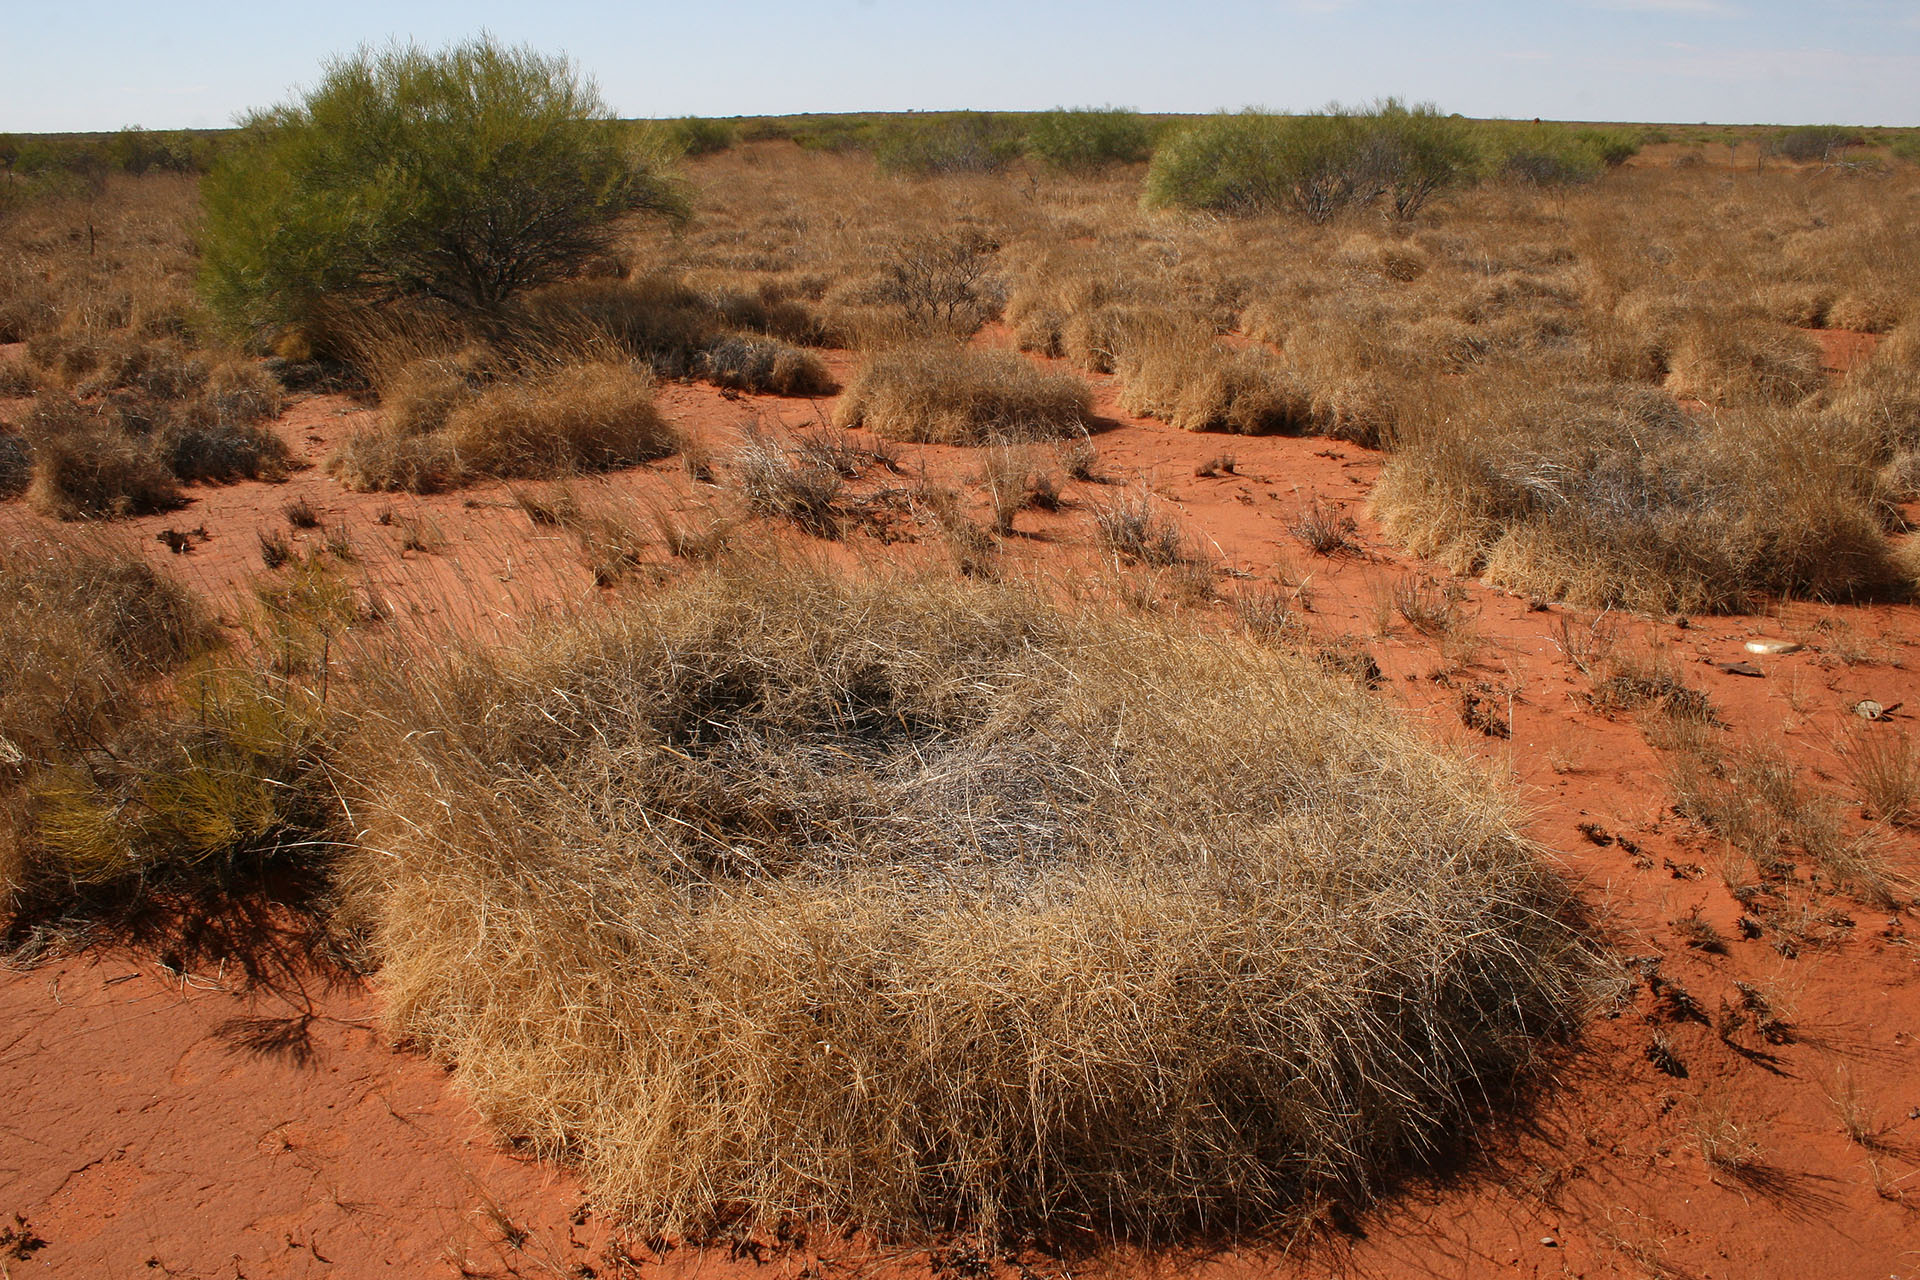 Dry grass is coiled into these circular shapes.